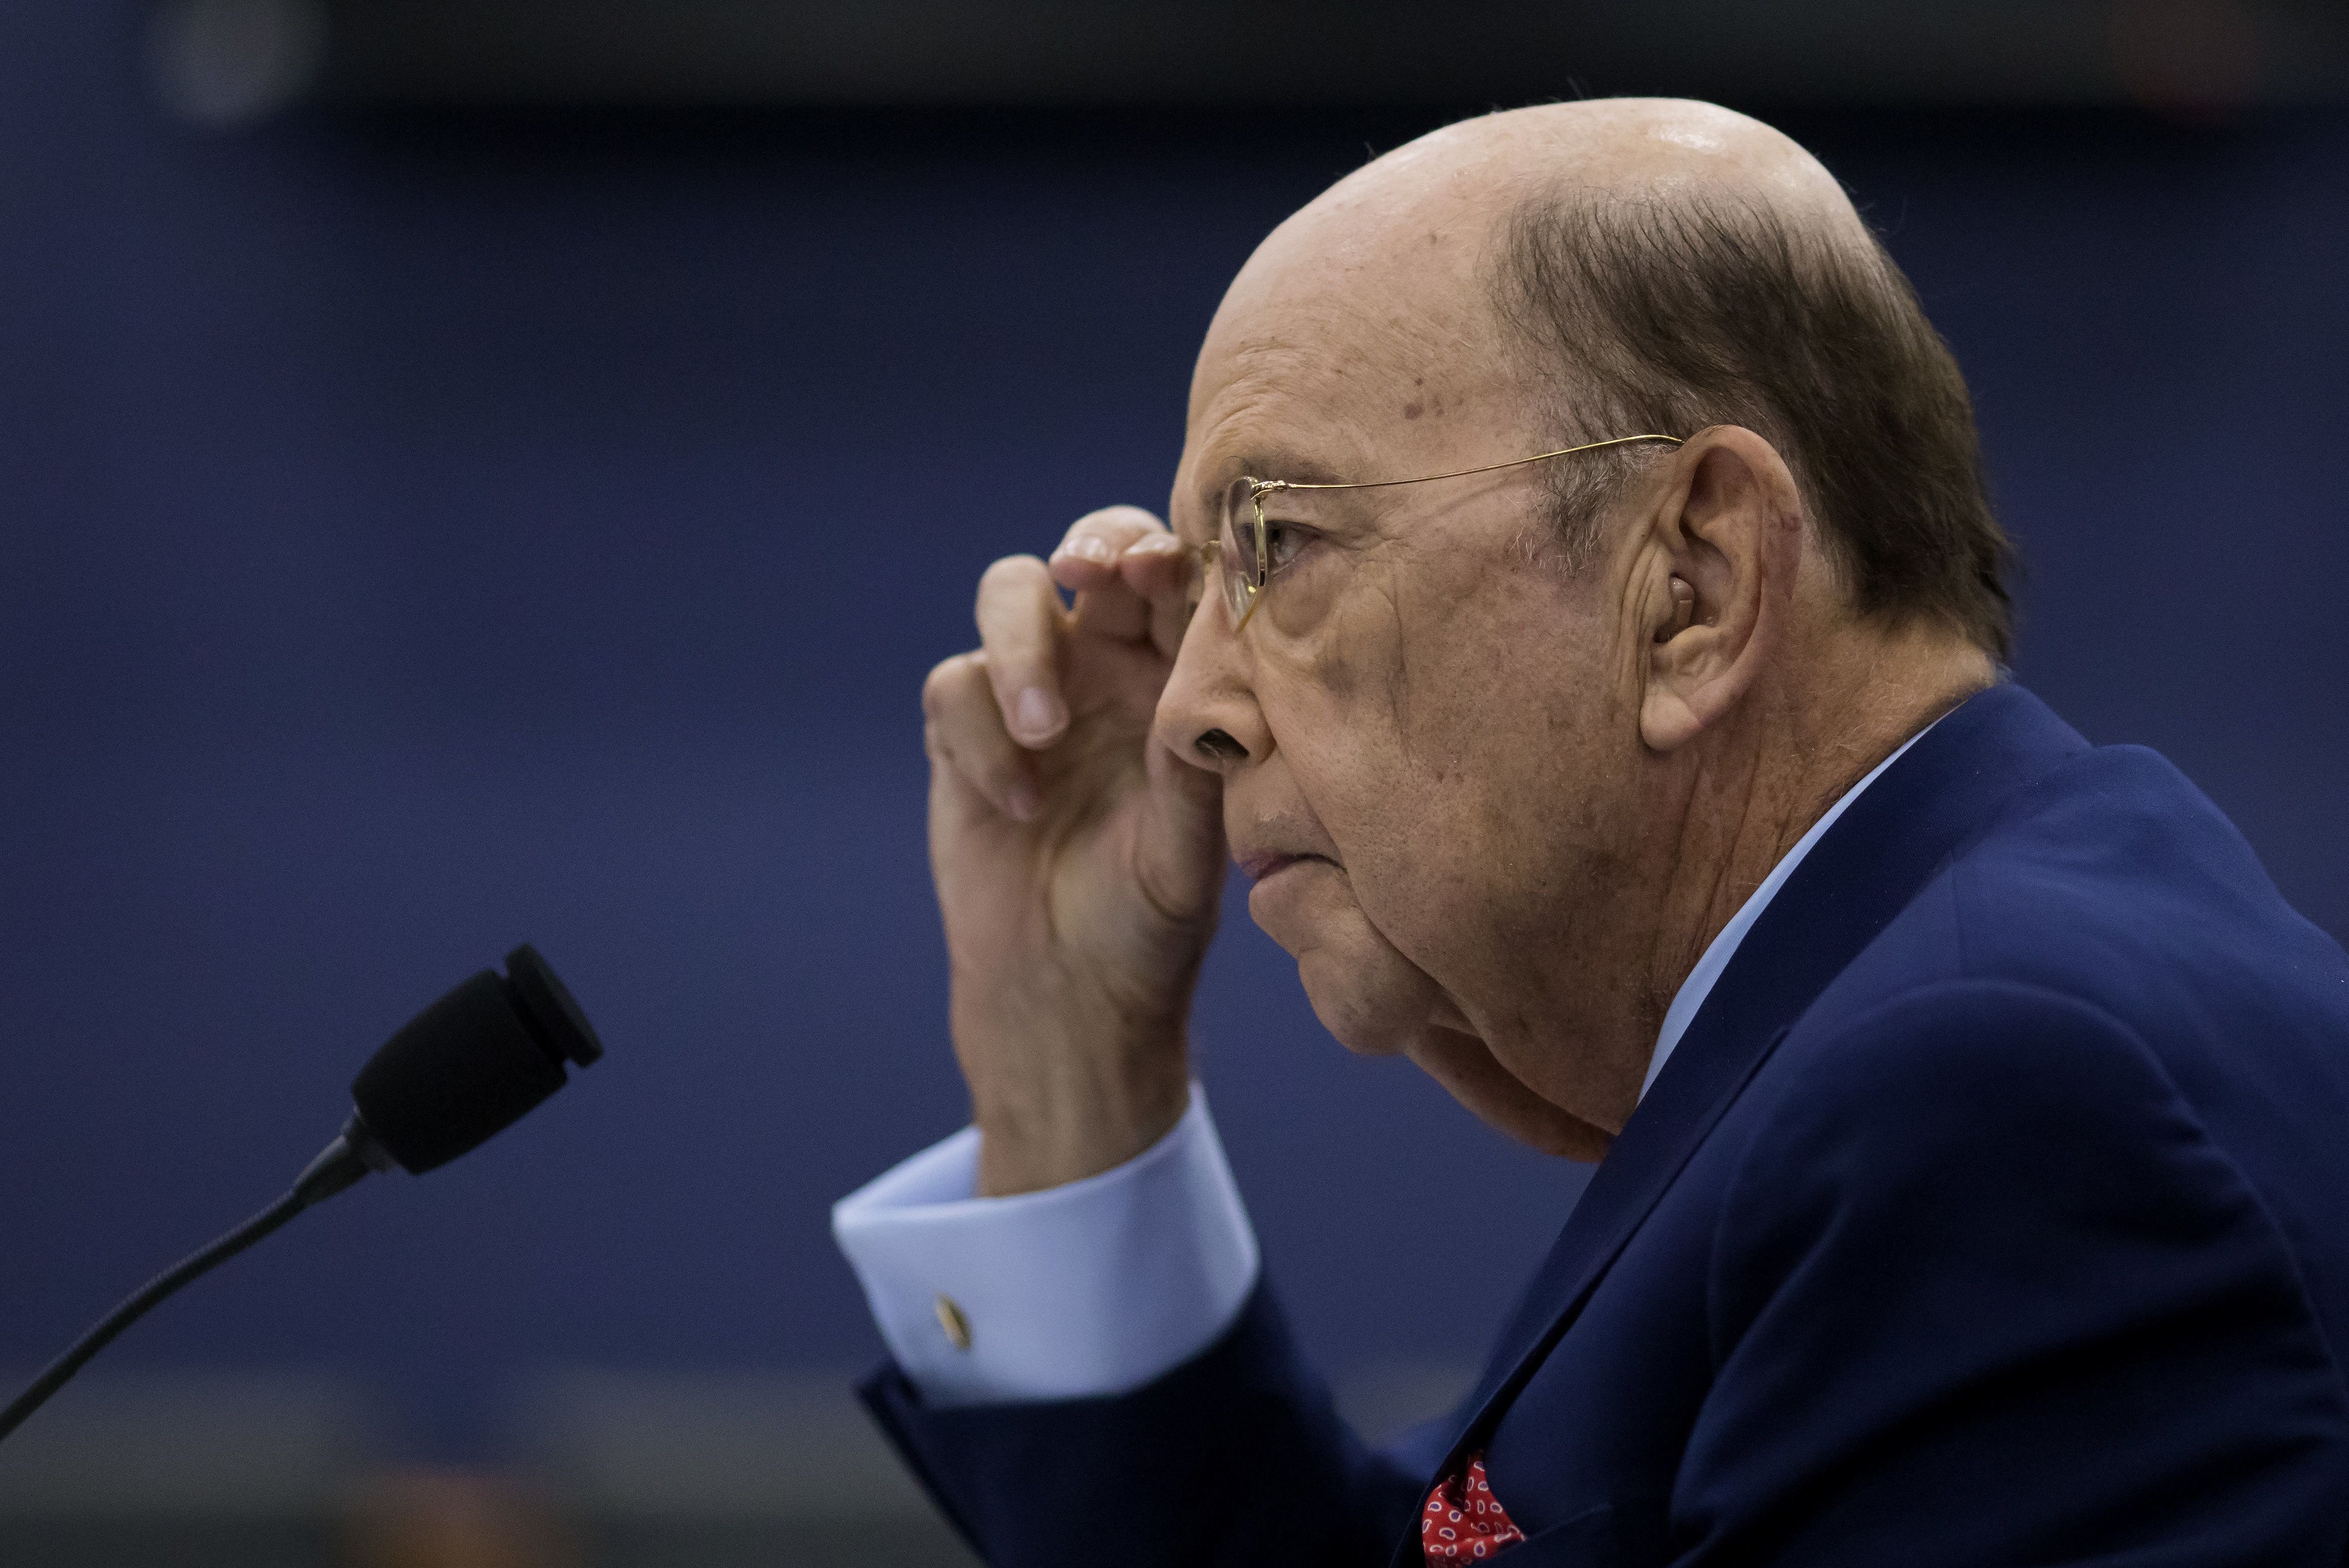 Commerce Secretary Wilbur Ross claims he sold his stake inDiamond S Shippingmonths ago.